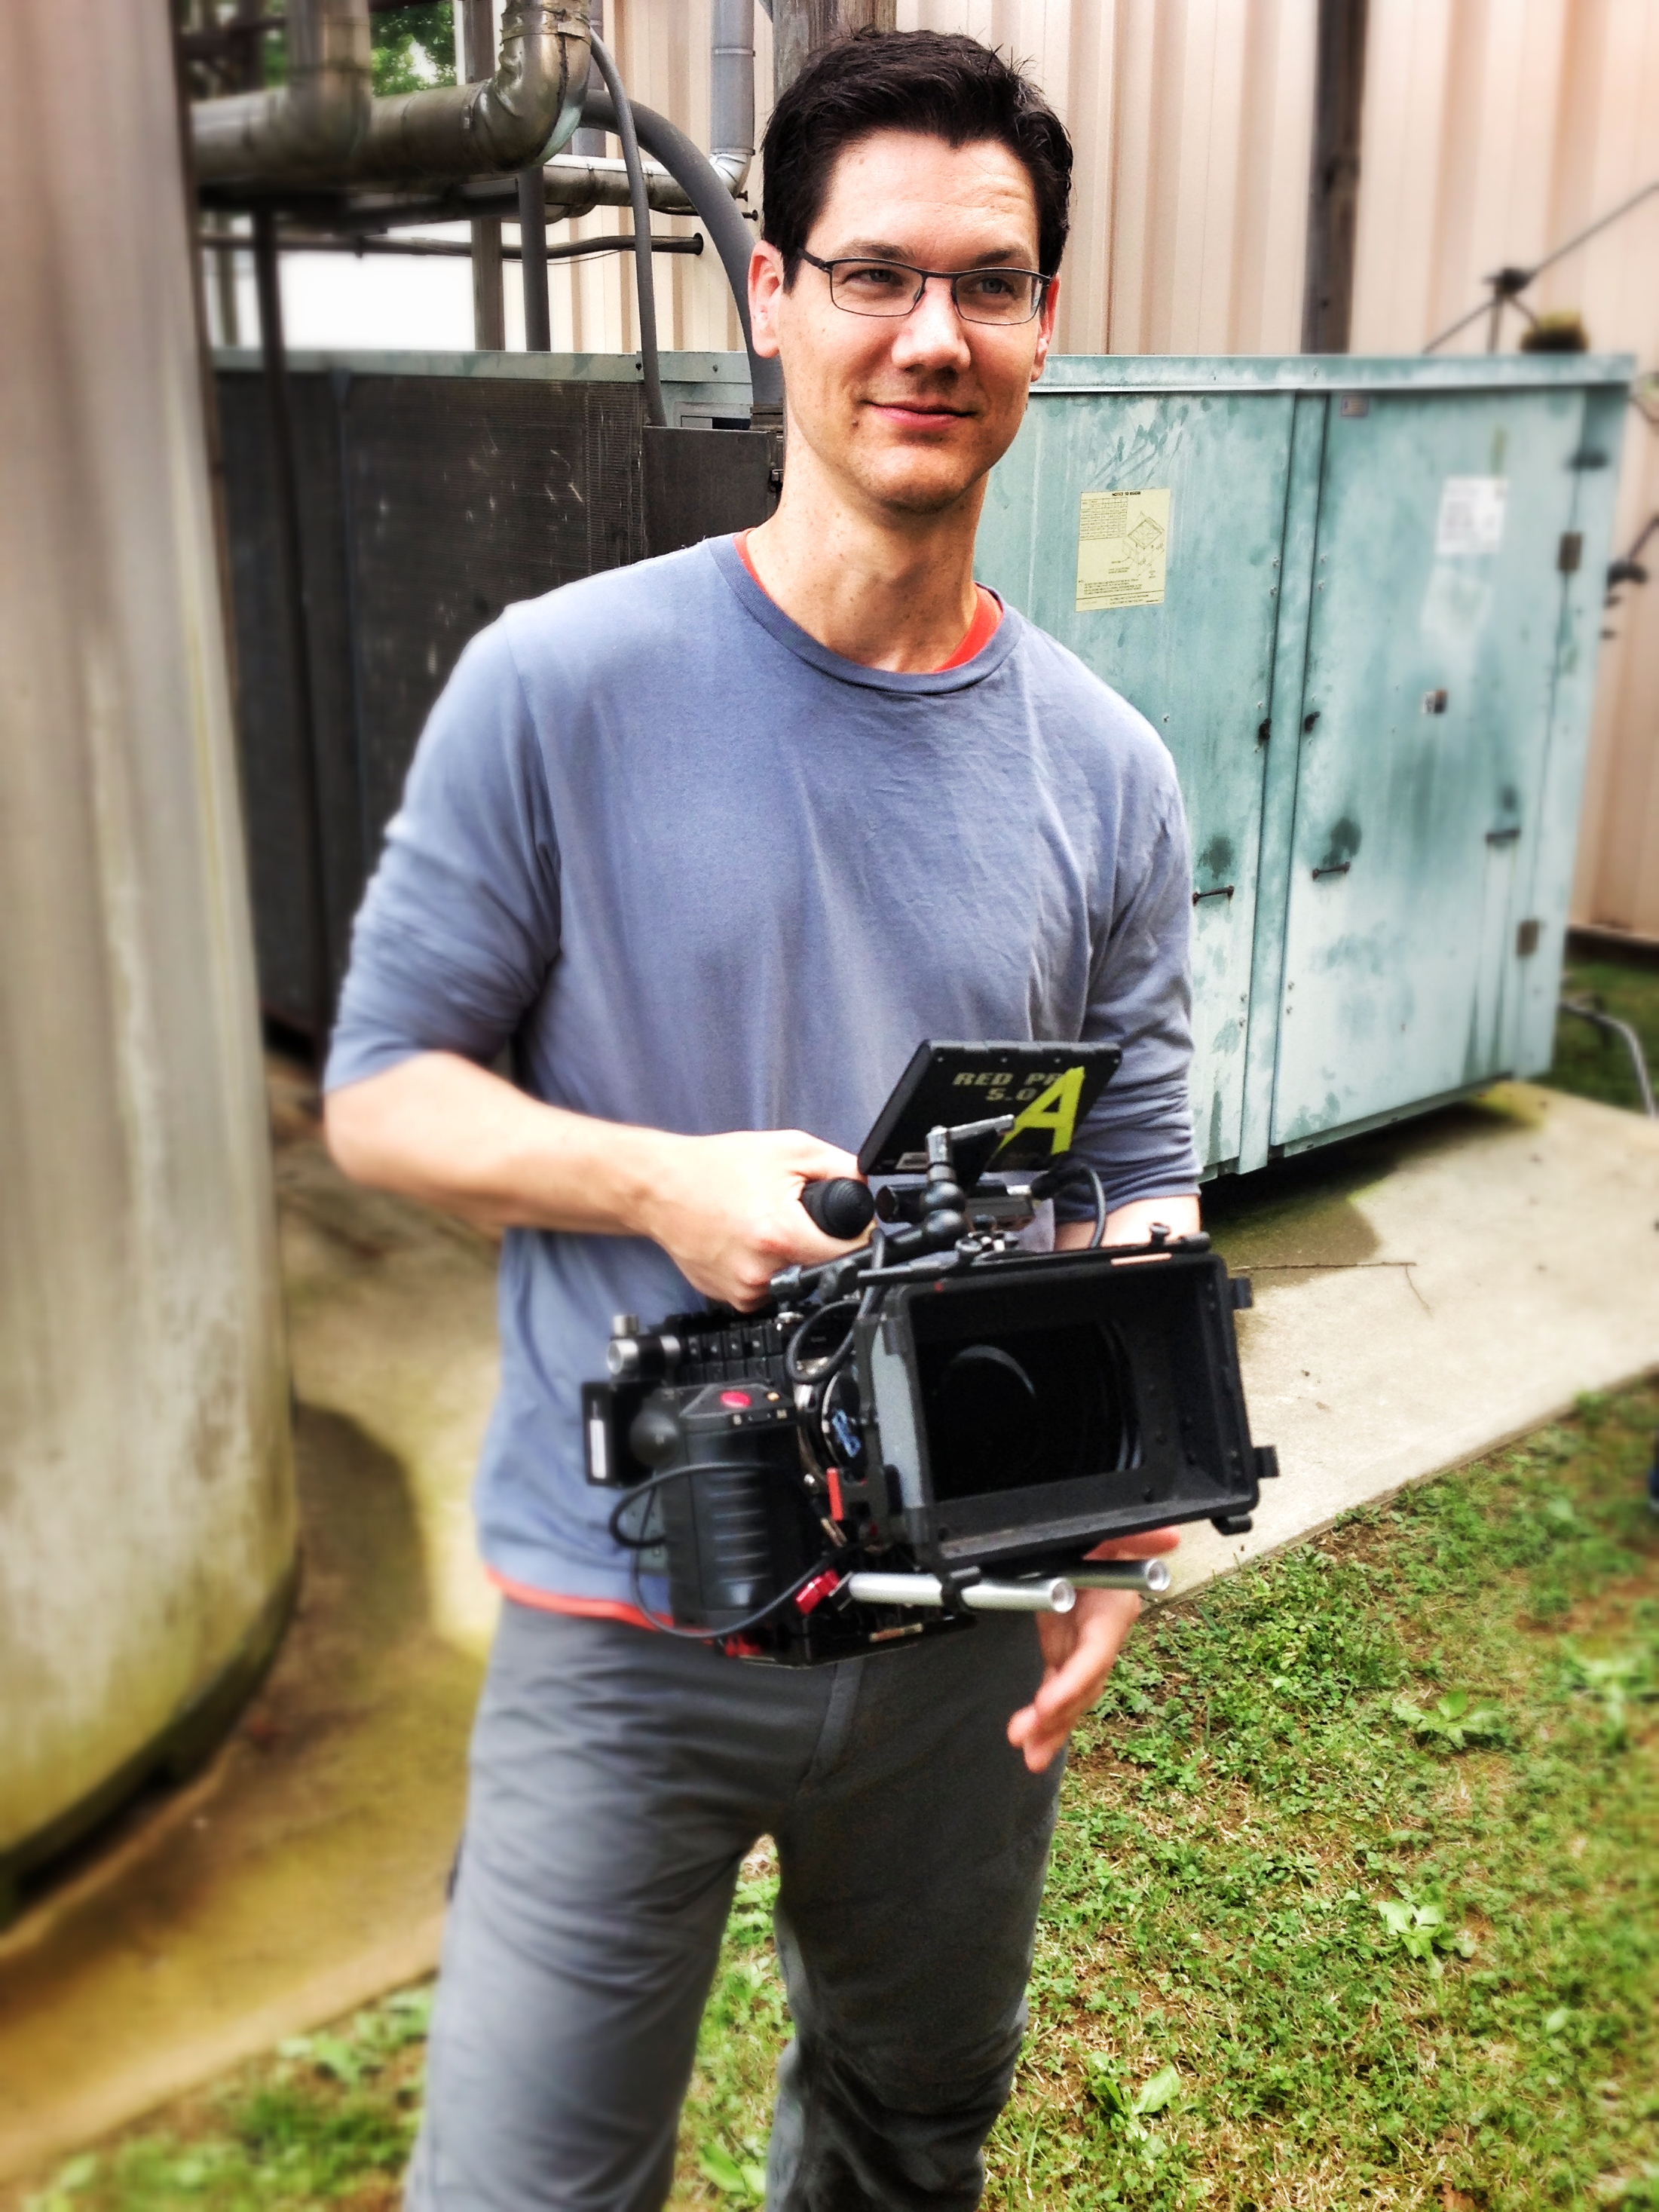 Andy with Red Camera